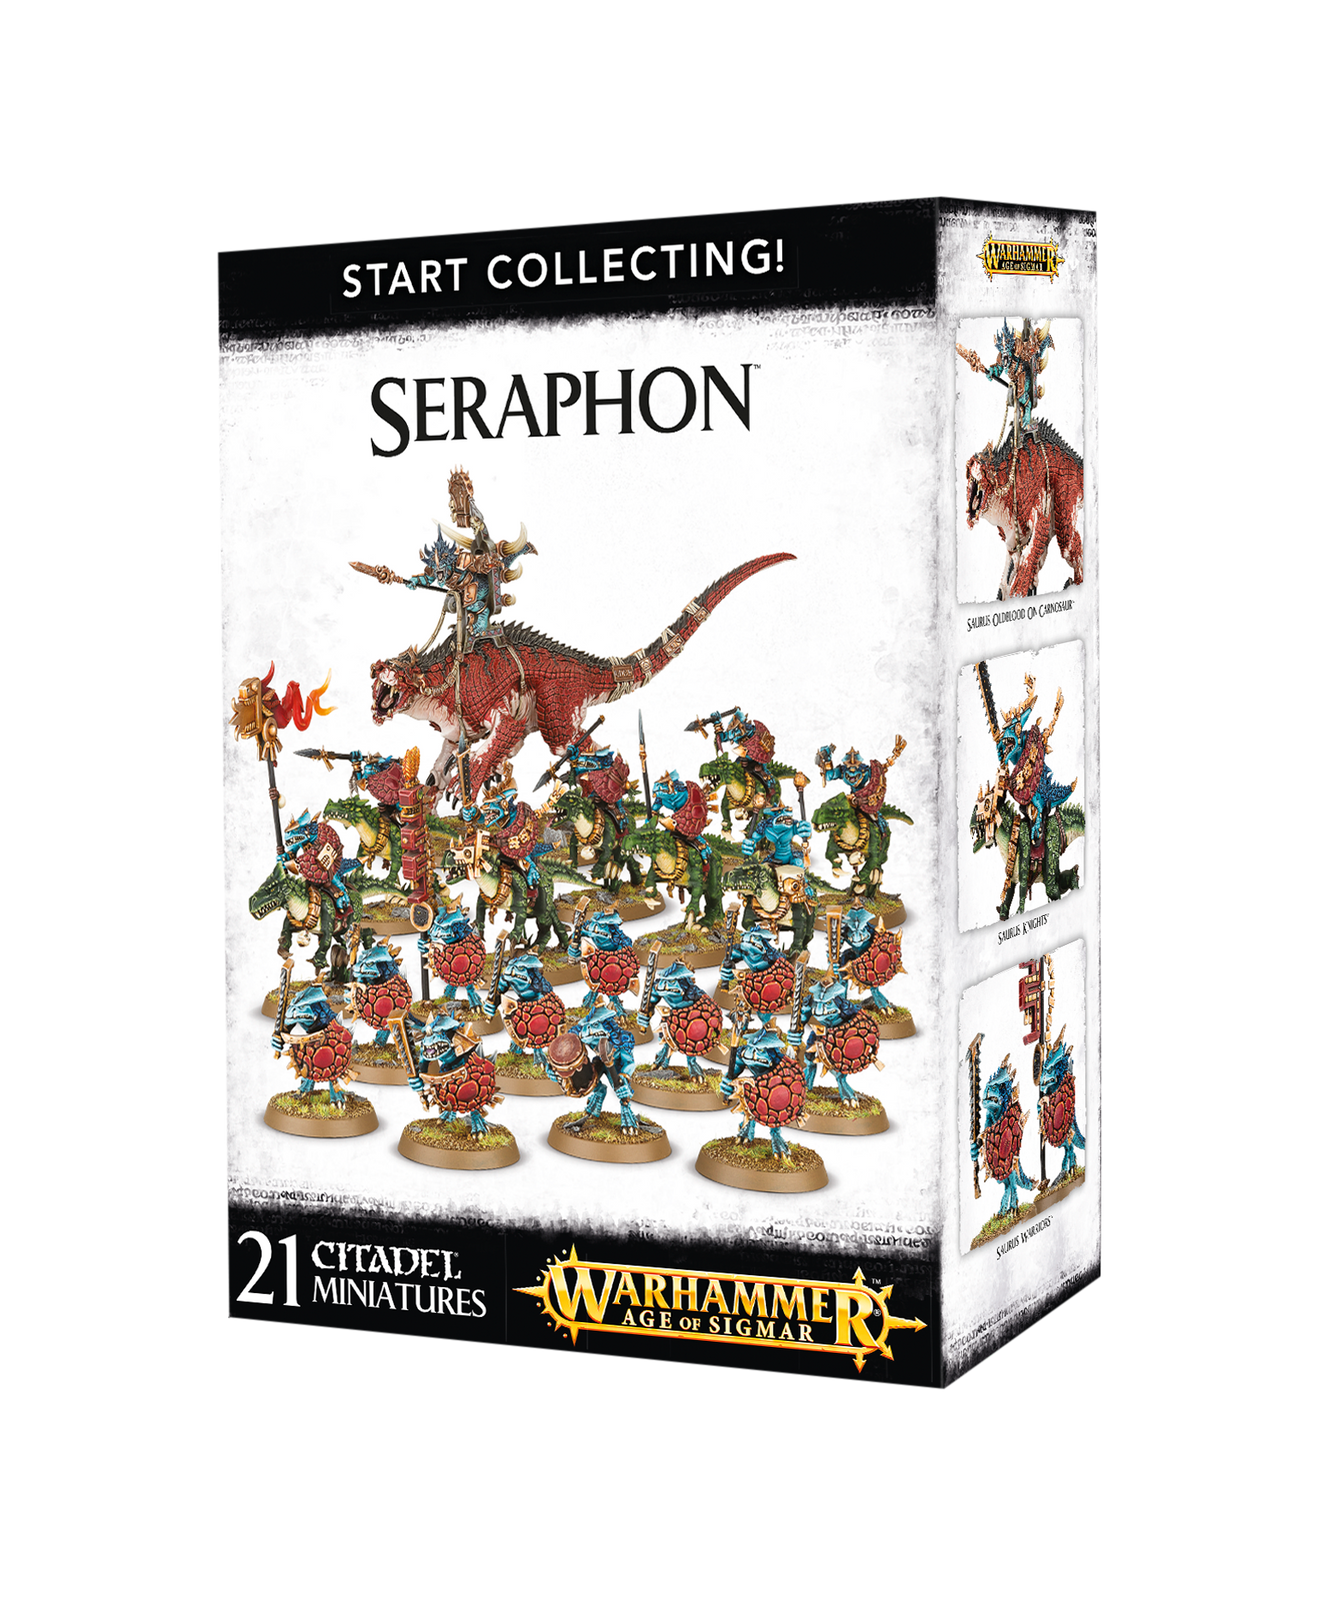 Box image for Start collecting Seraphon